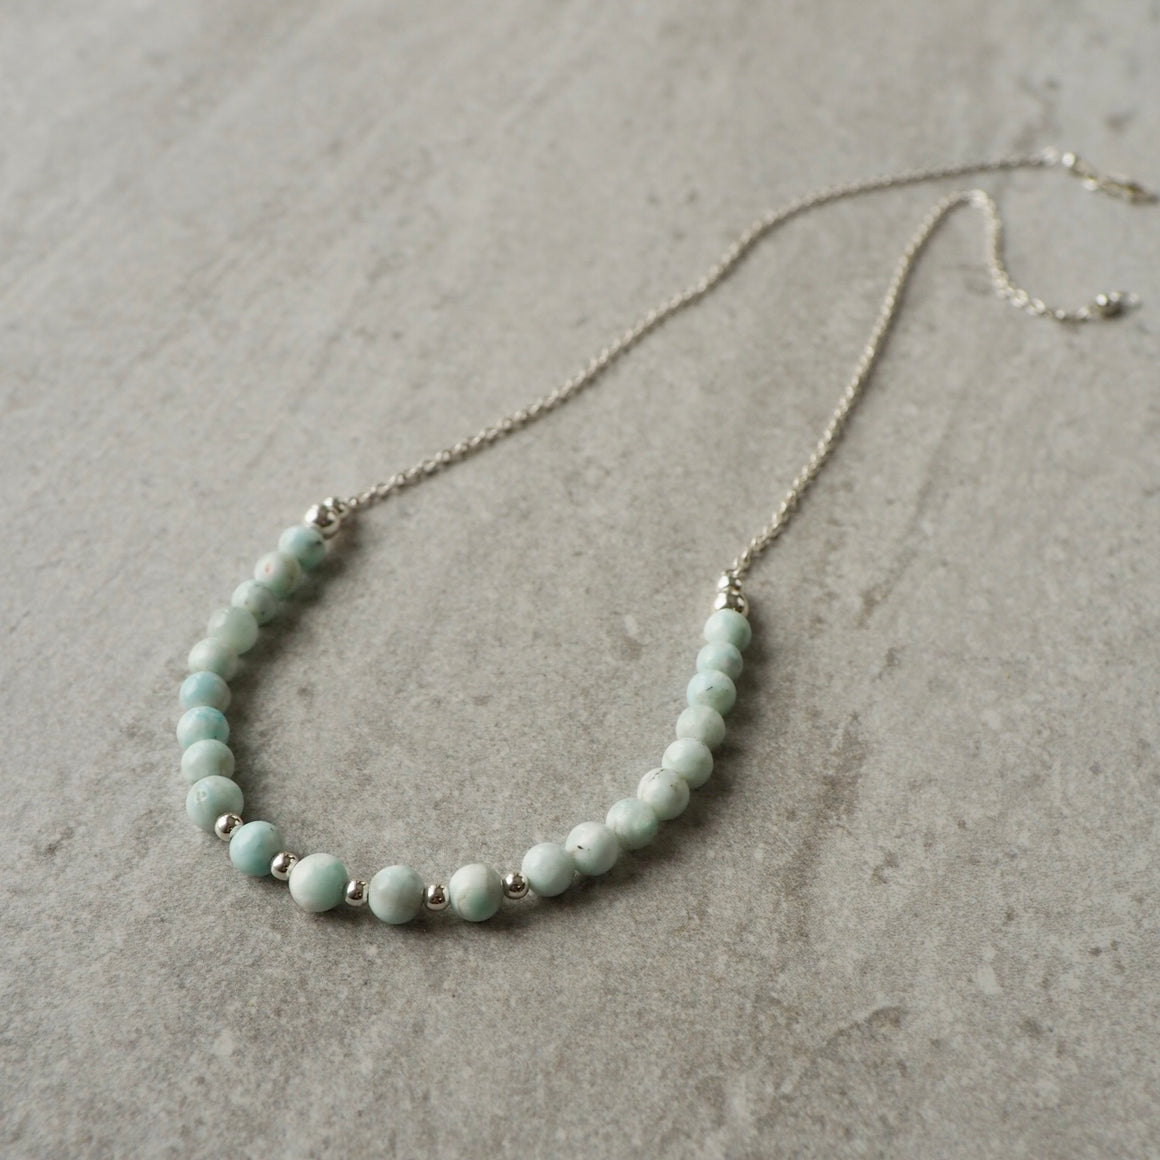 Mint Gemstone Necklace with Sterling Silver Chain